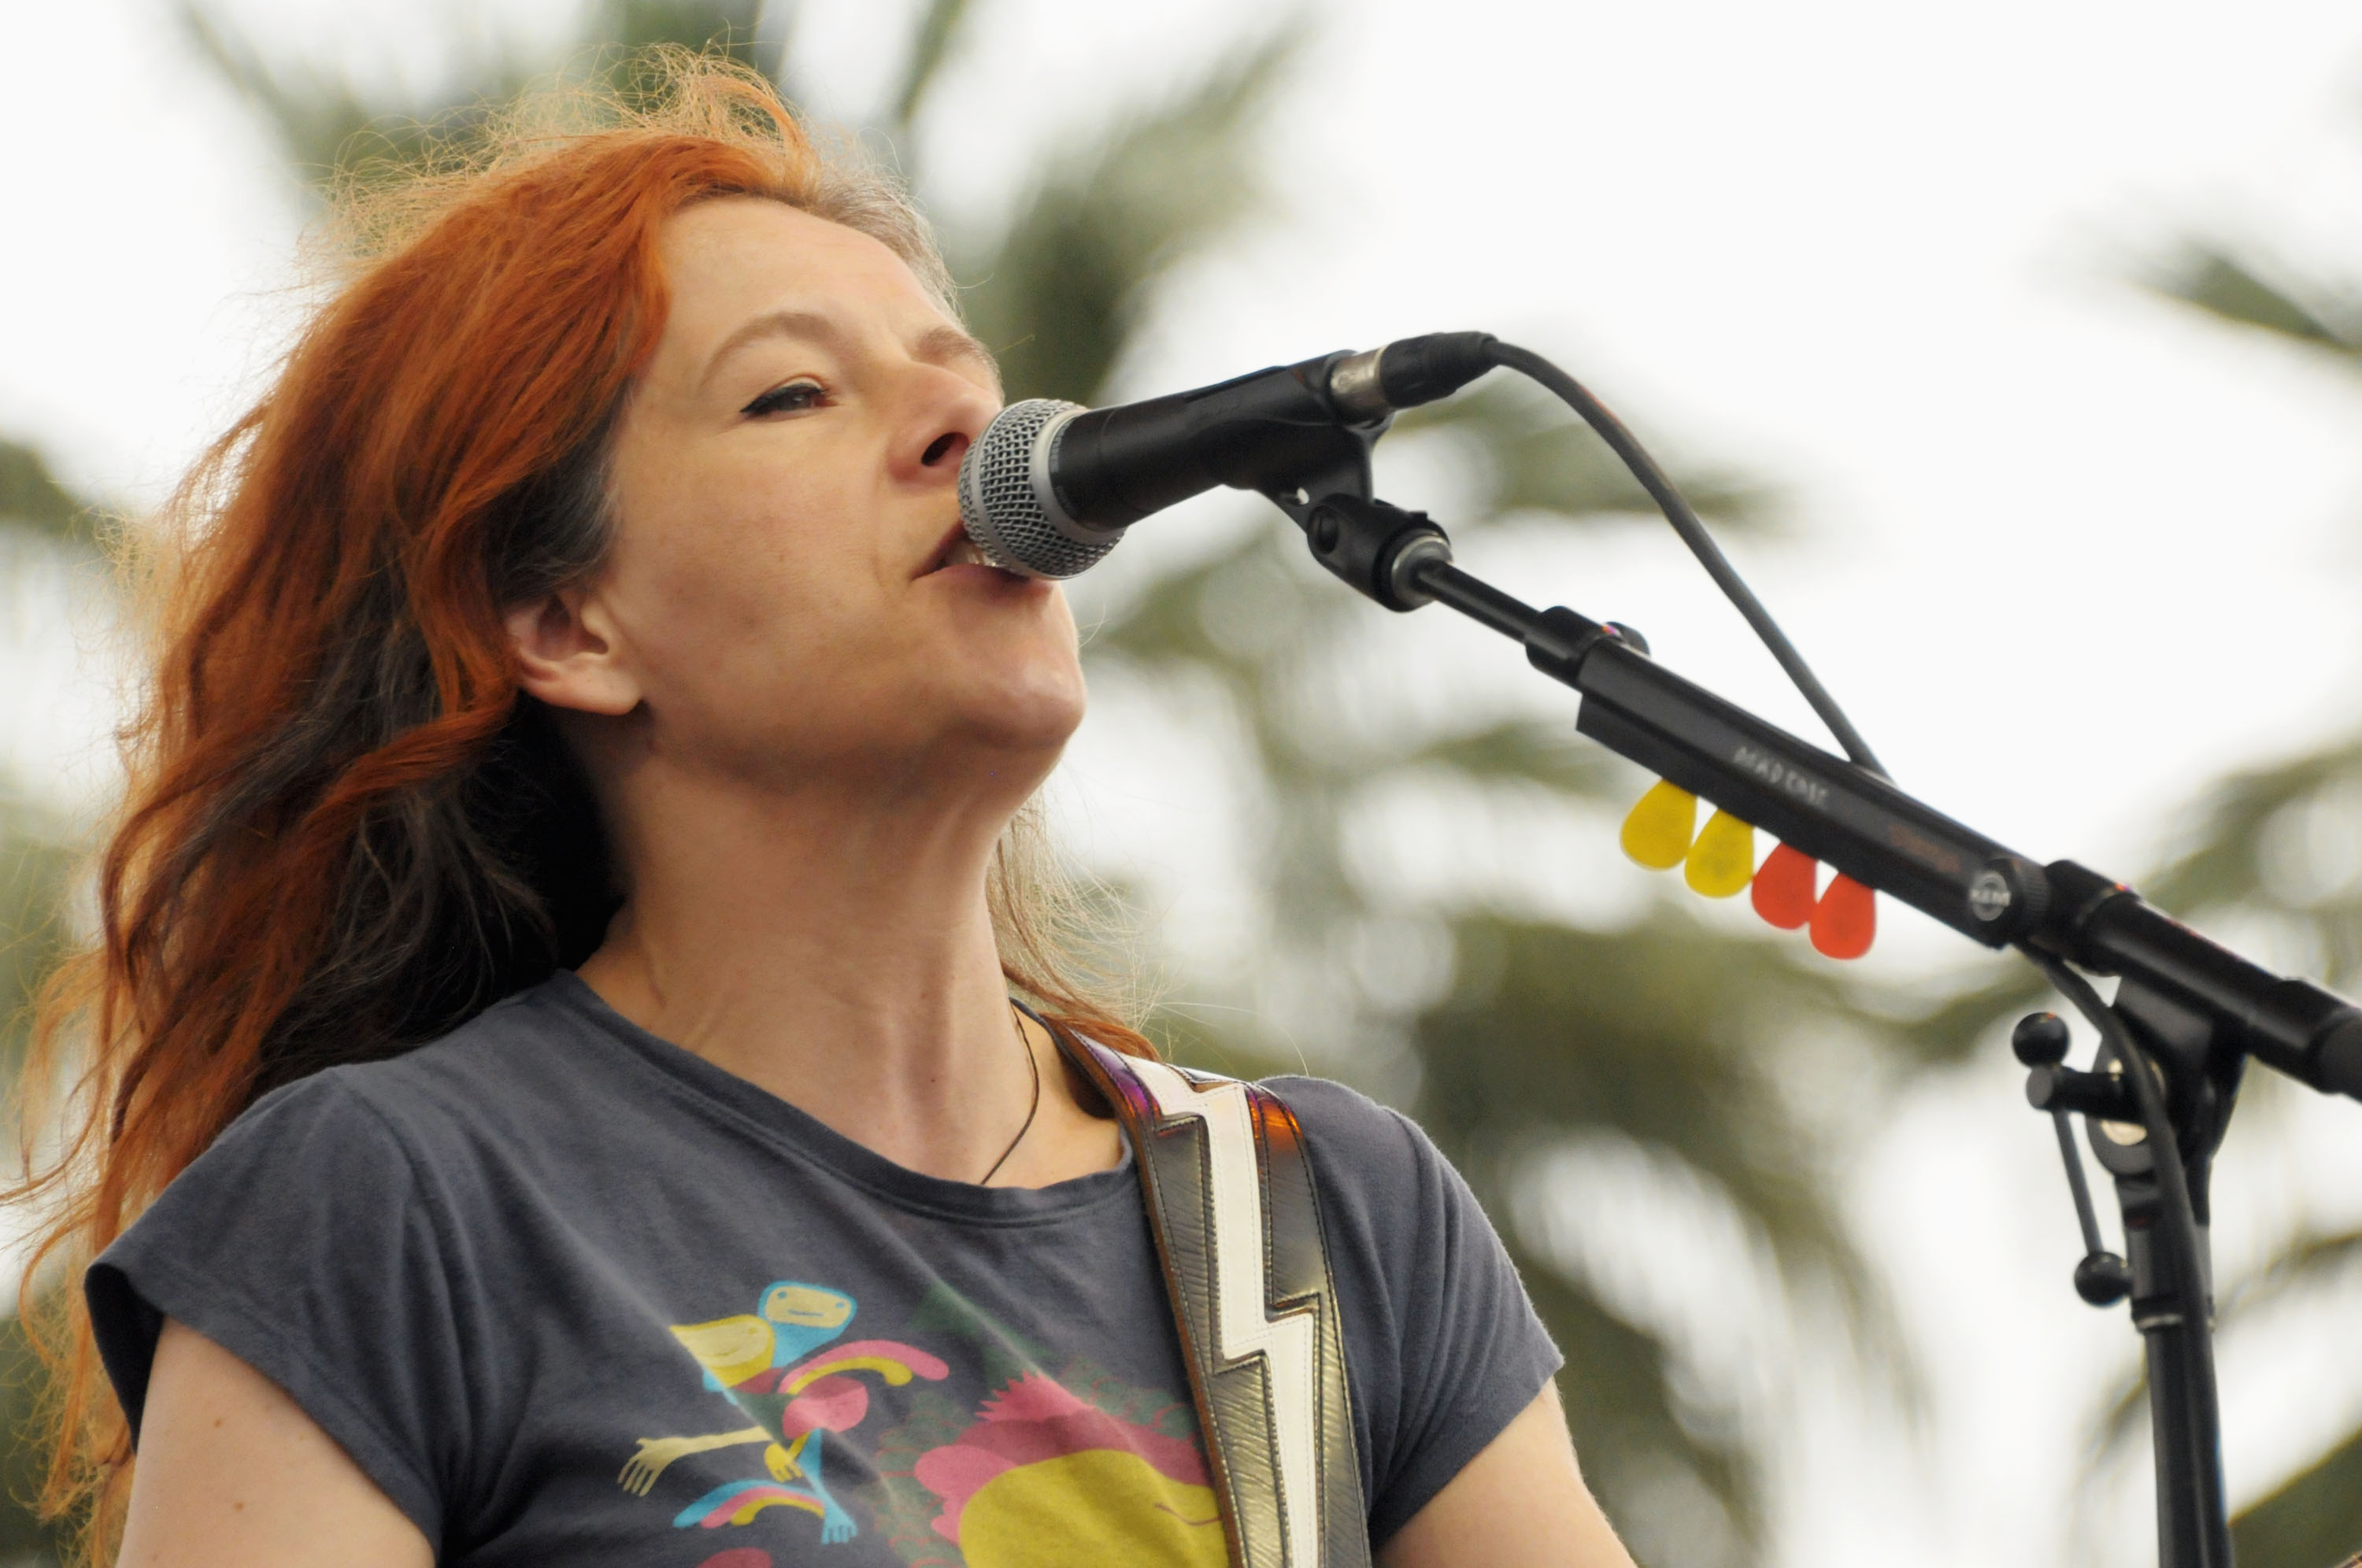 How to write a great song, according to singer-songwriter Neko Case